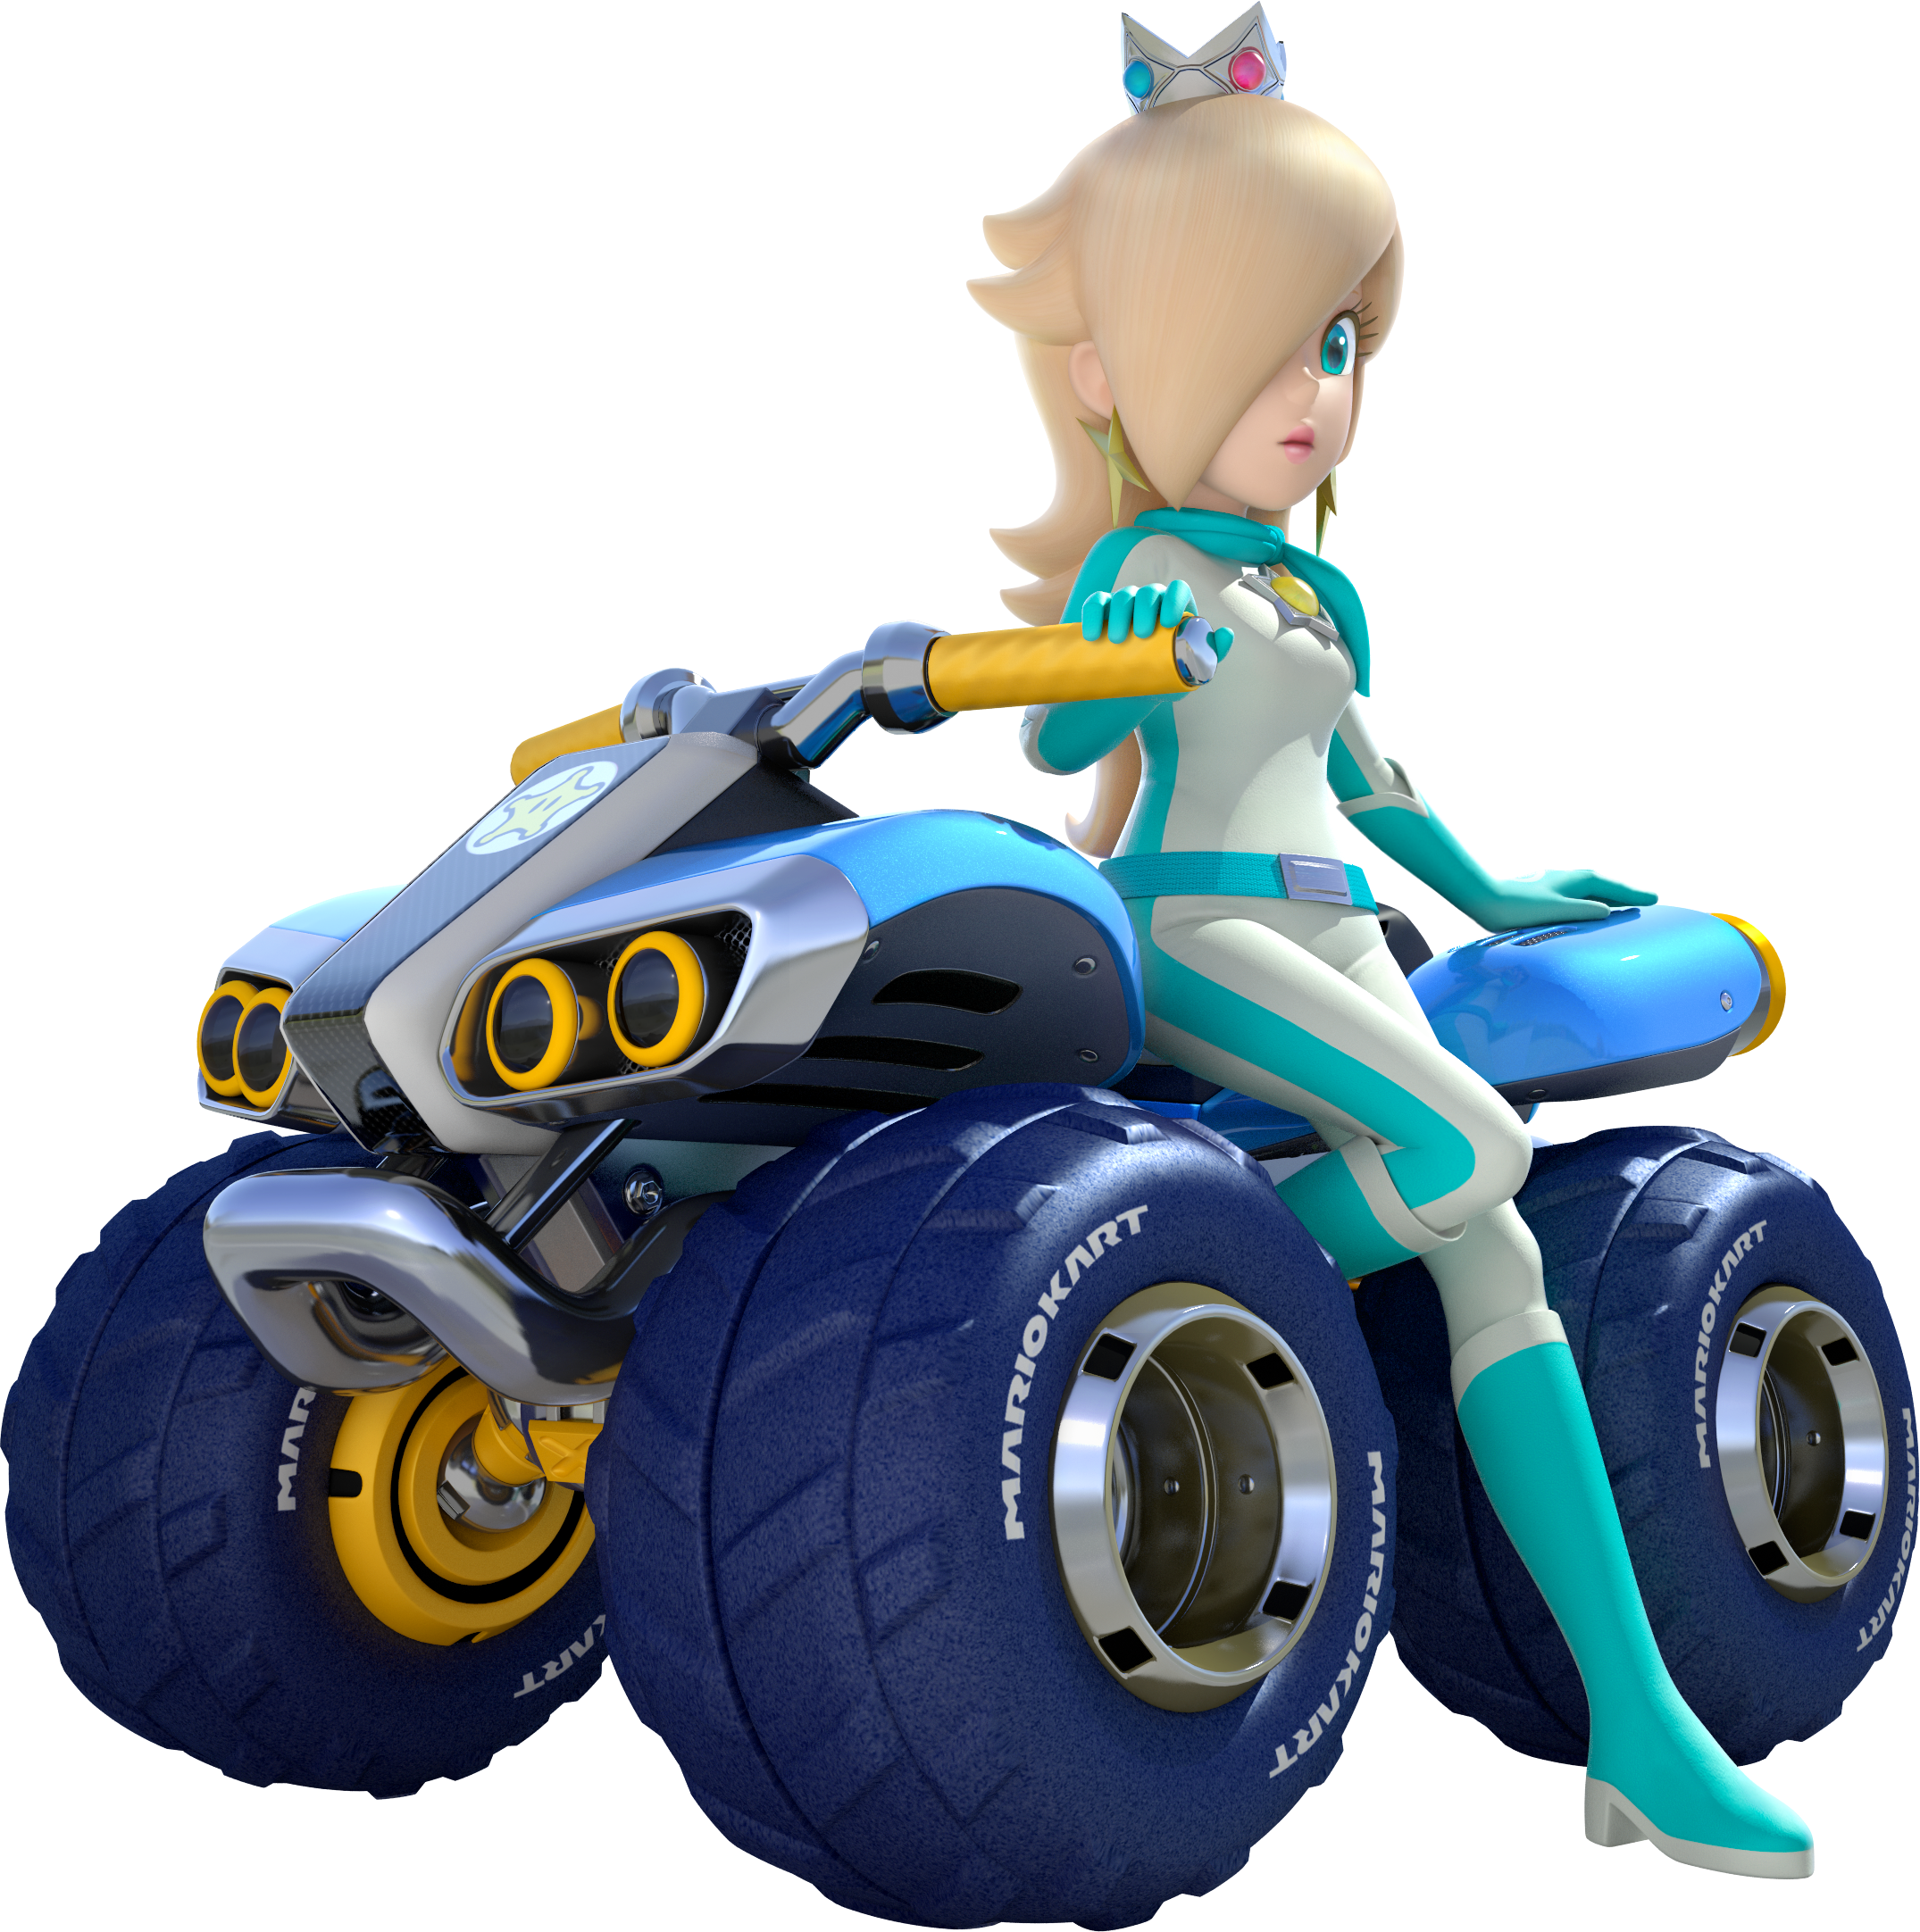 Rosalina On An Atv With Monster Truck Wheels Profile Artwork From